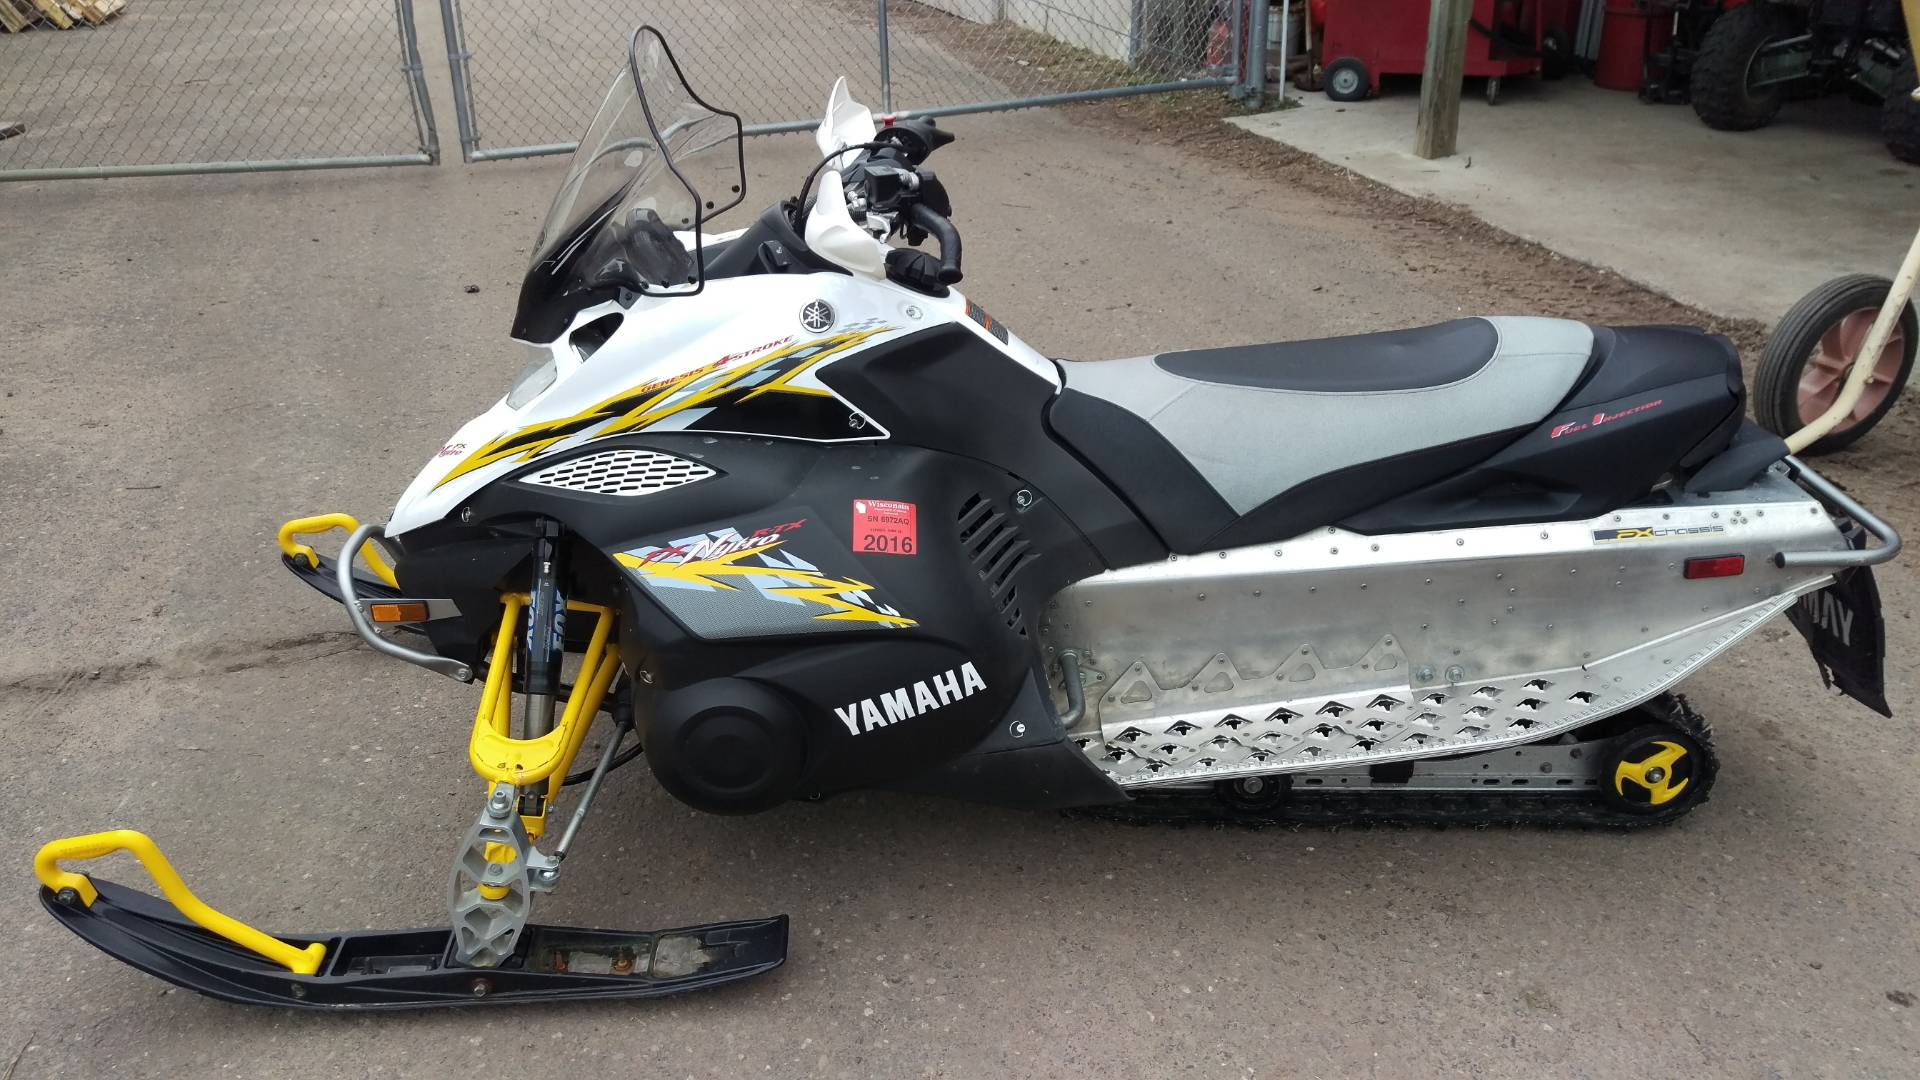 2008 yamaha fx nytro snowmobiles trego wisconsin sno1466a for Yamaha dealers in delaware